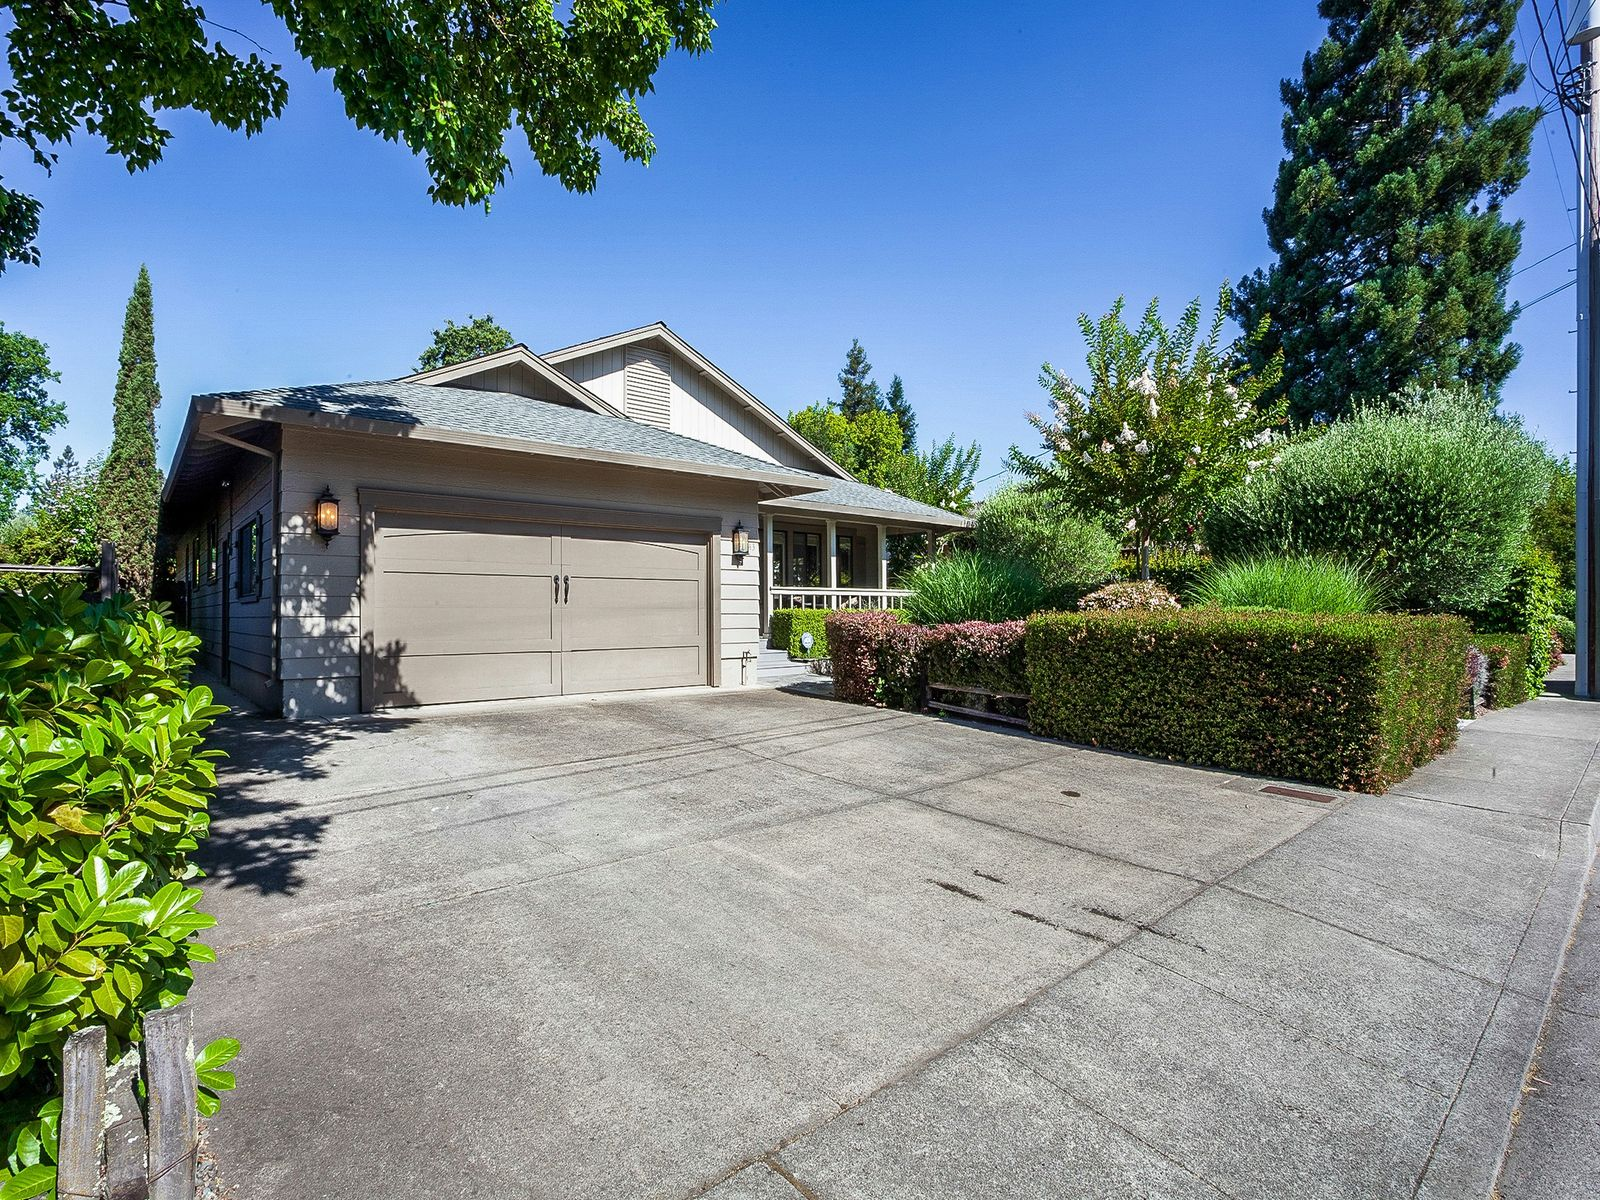 East Side Charmer , Sonoma CA Single Family Home - Sonoma - Napa Real Estate